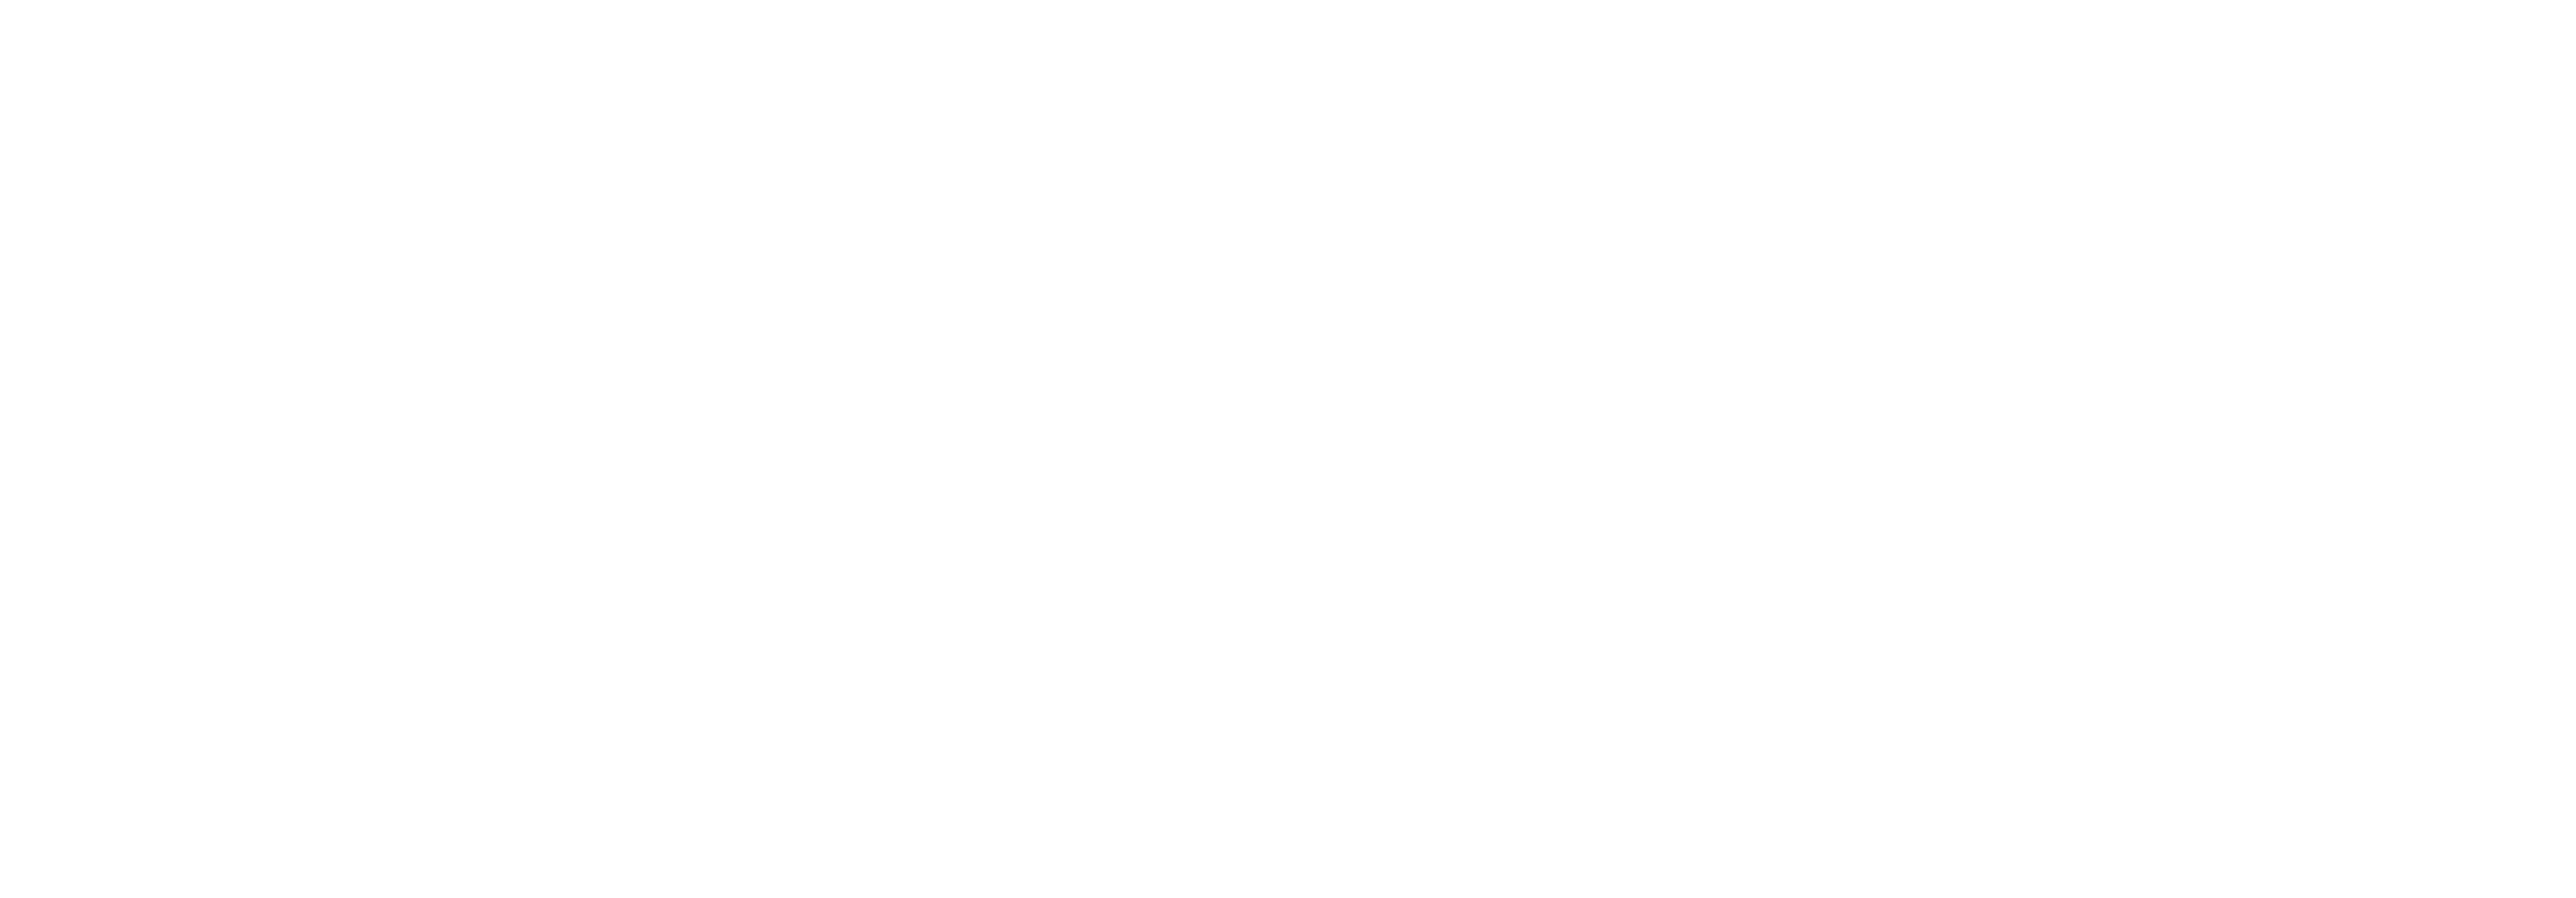 pause factory logo-29